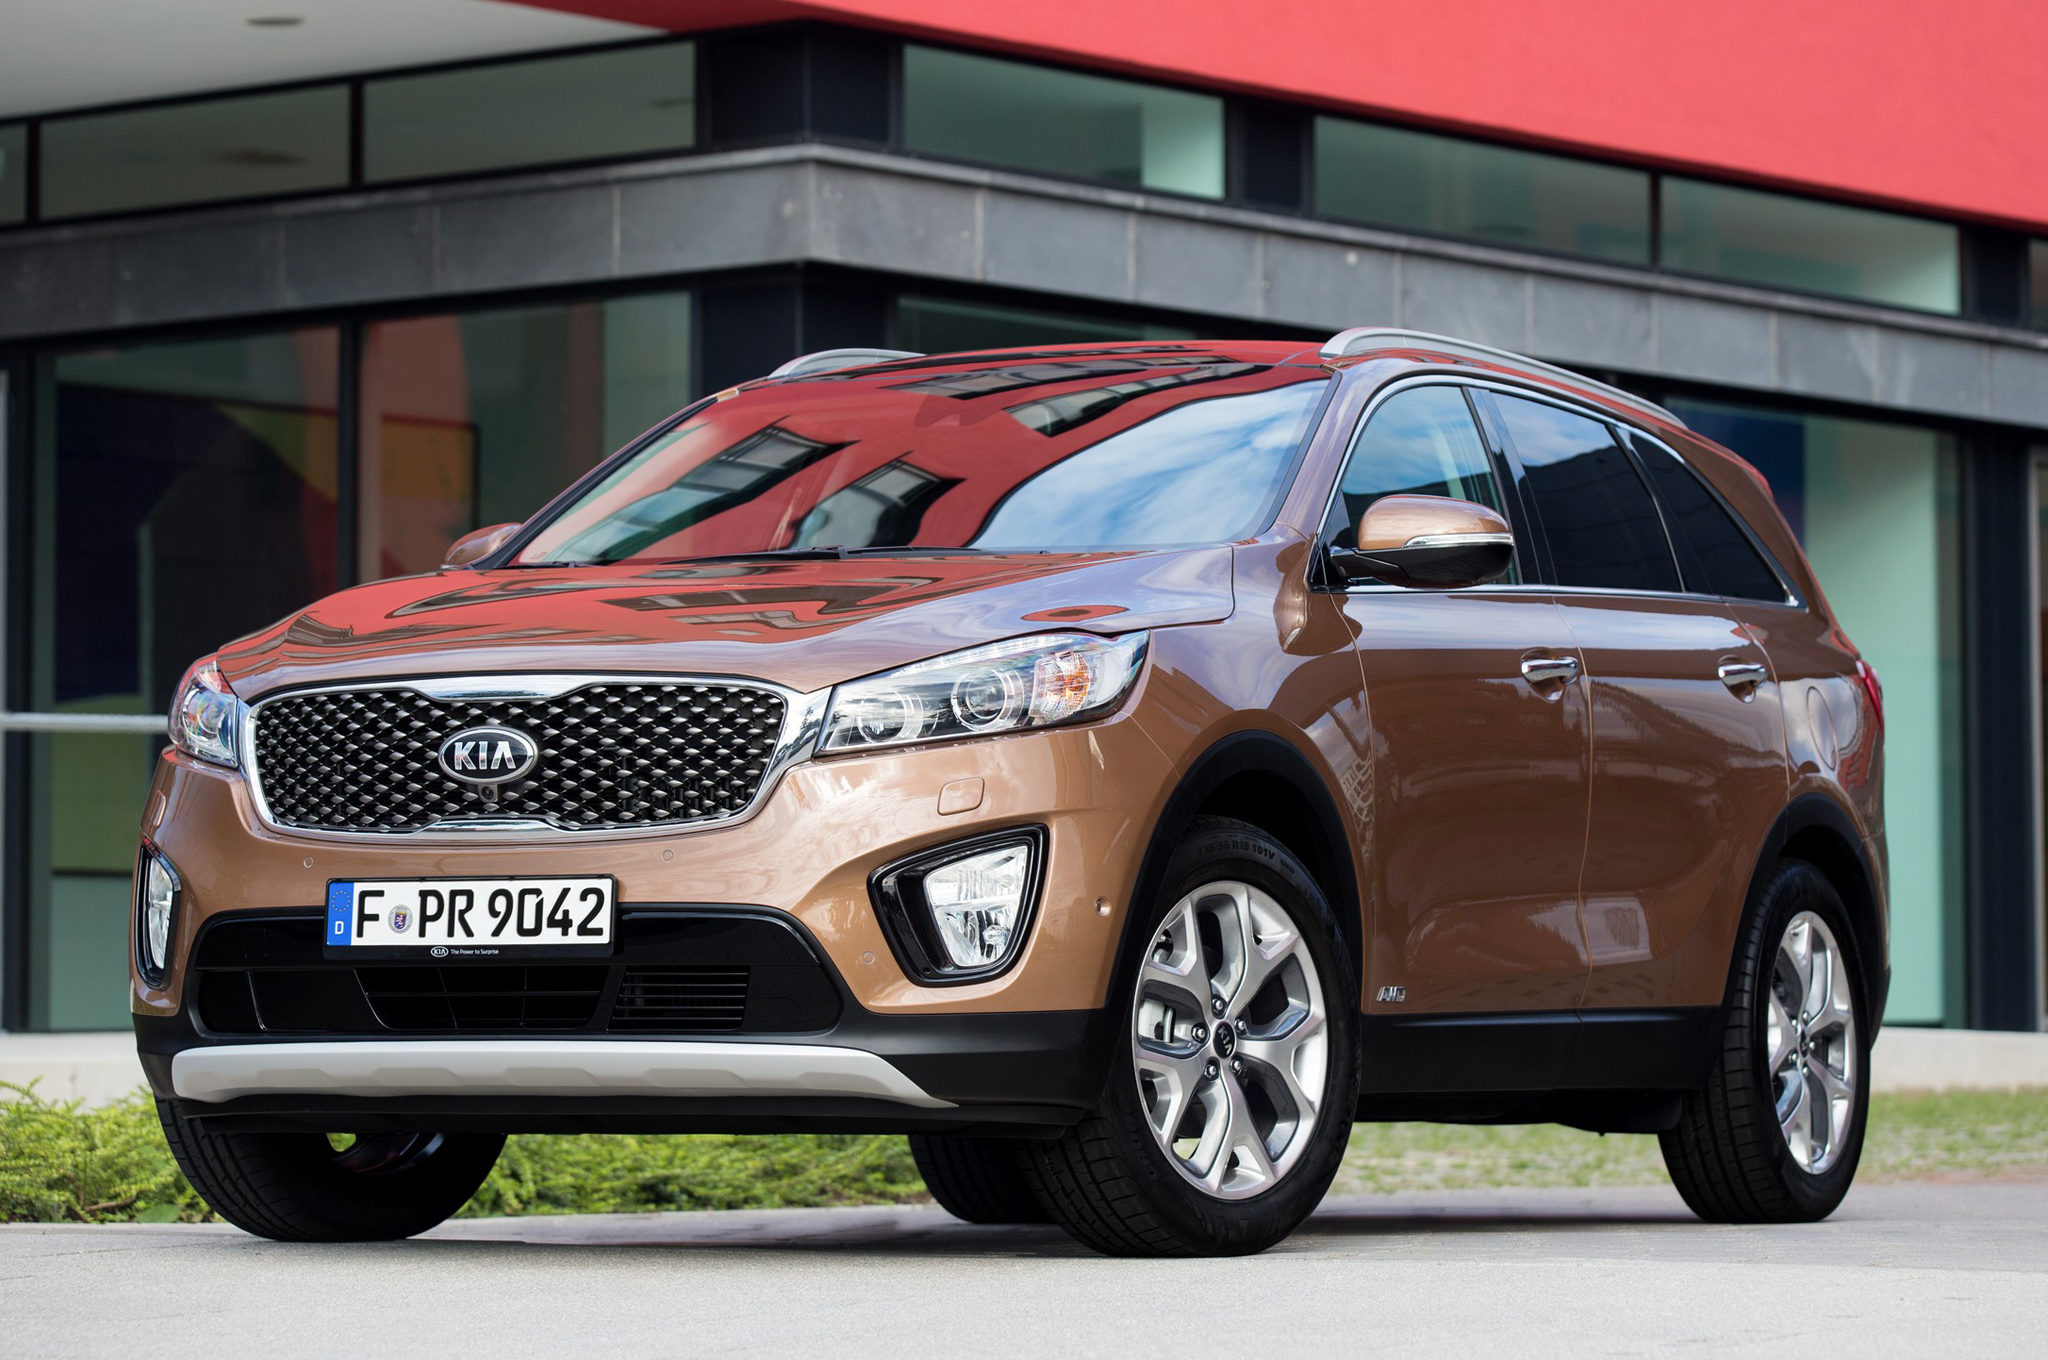 2016 kia sorento 32 car desktop background. Black Bedroom Furniture Sets. Home Design Ideas